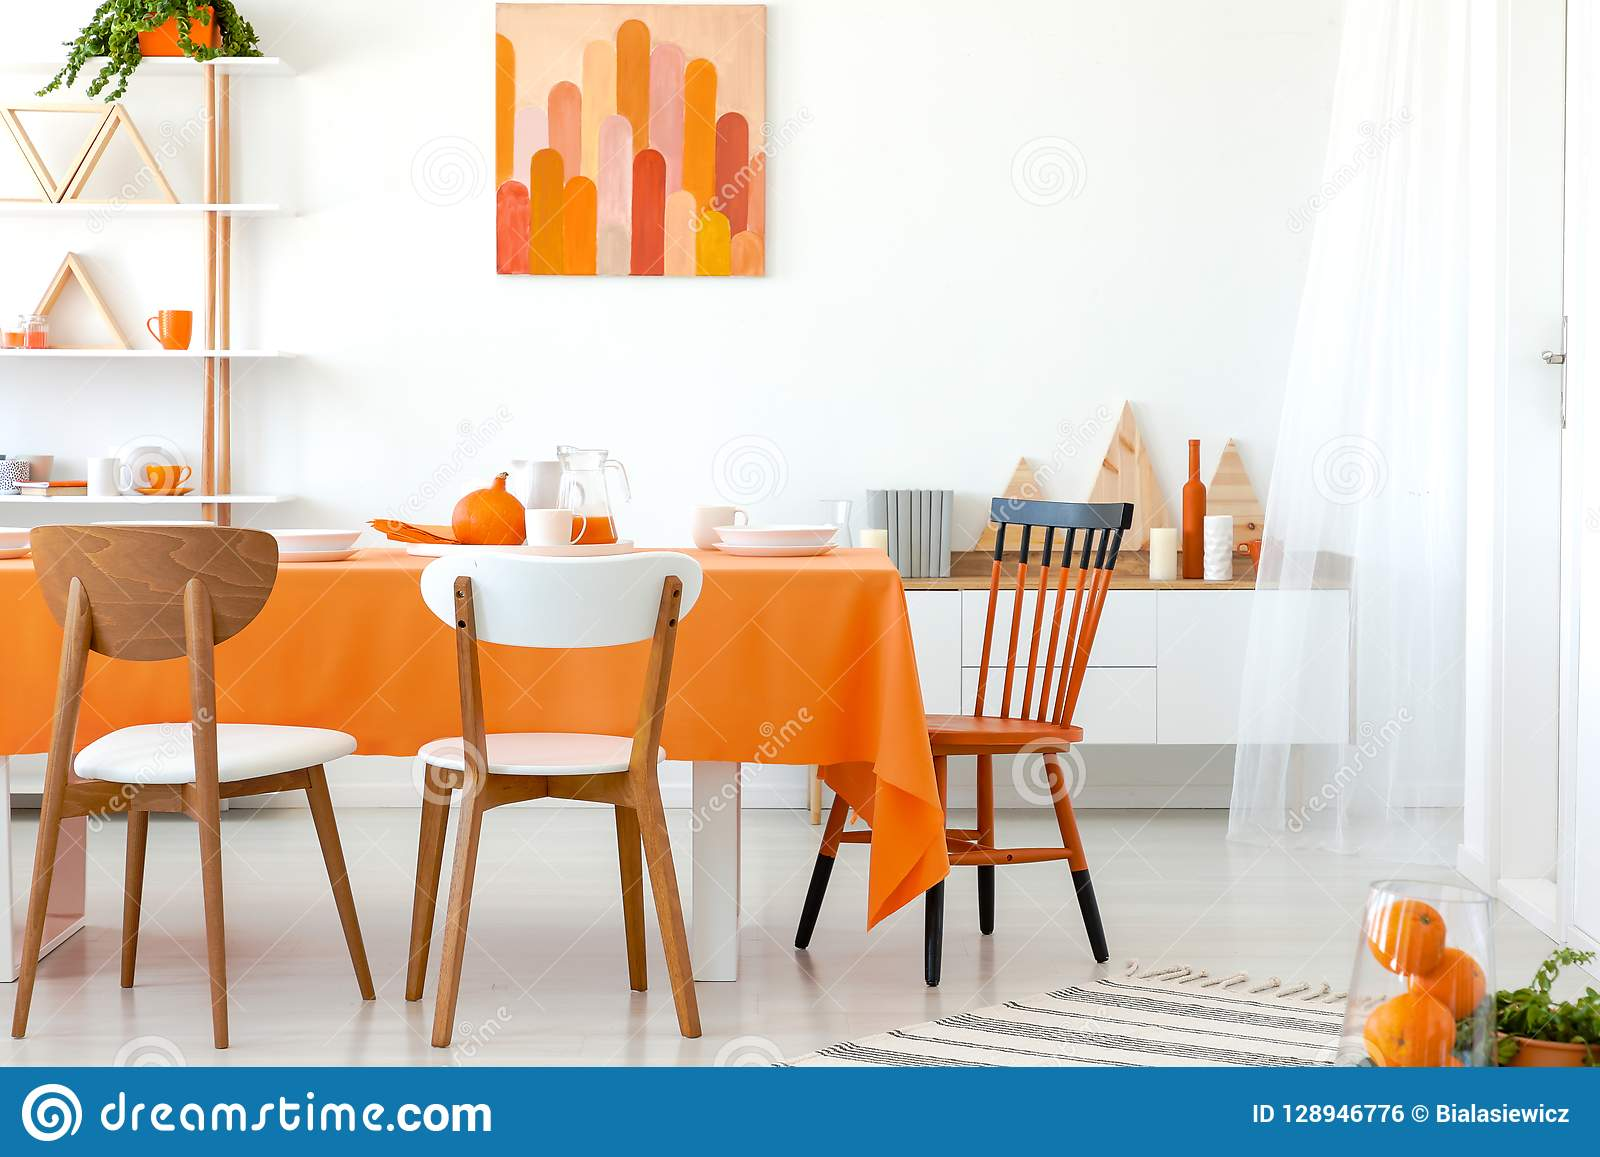 Kitchen Table Covered With Orange Tablecloth And White